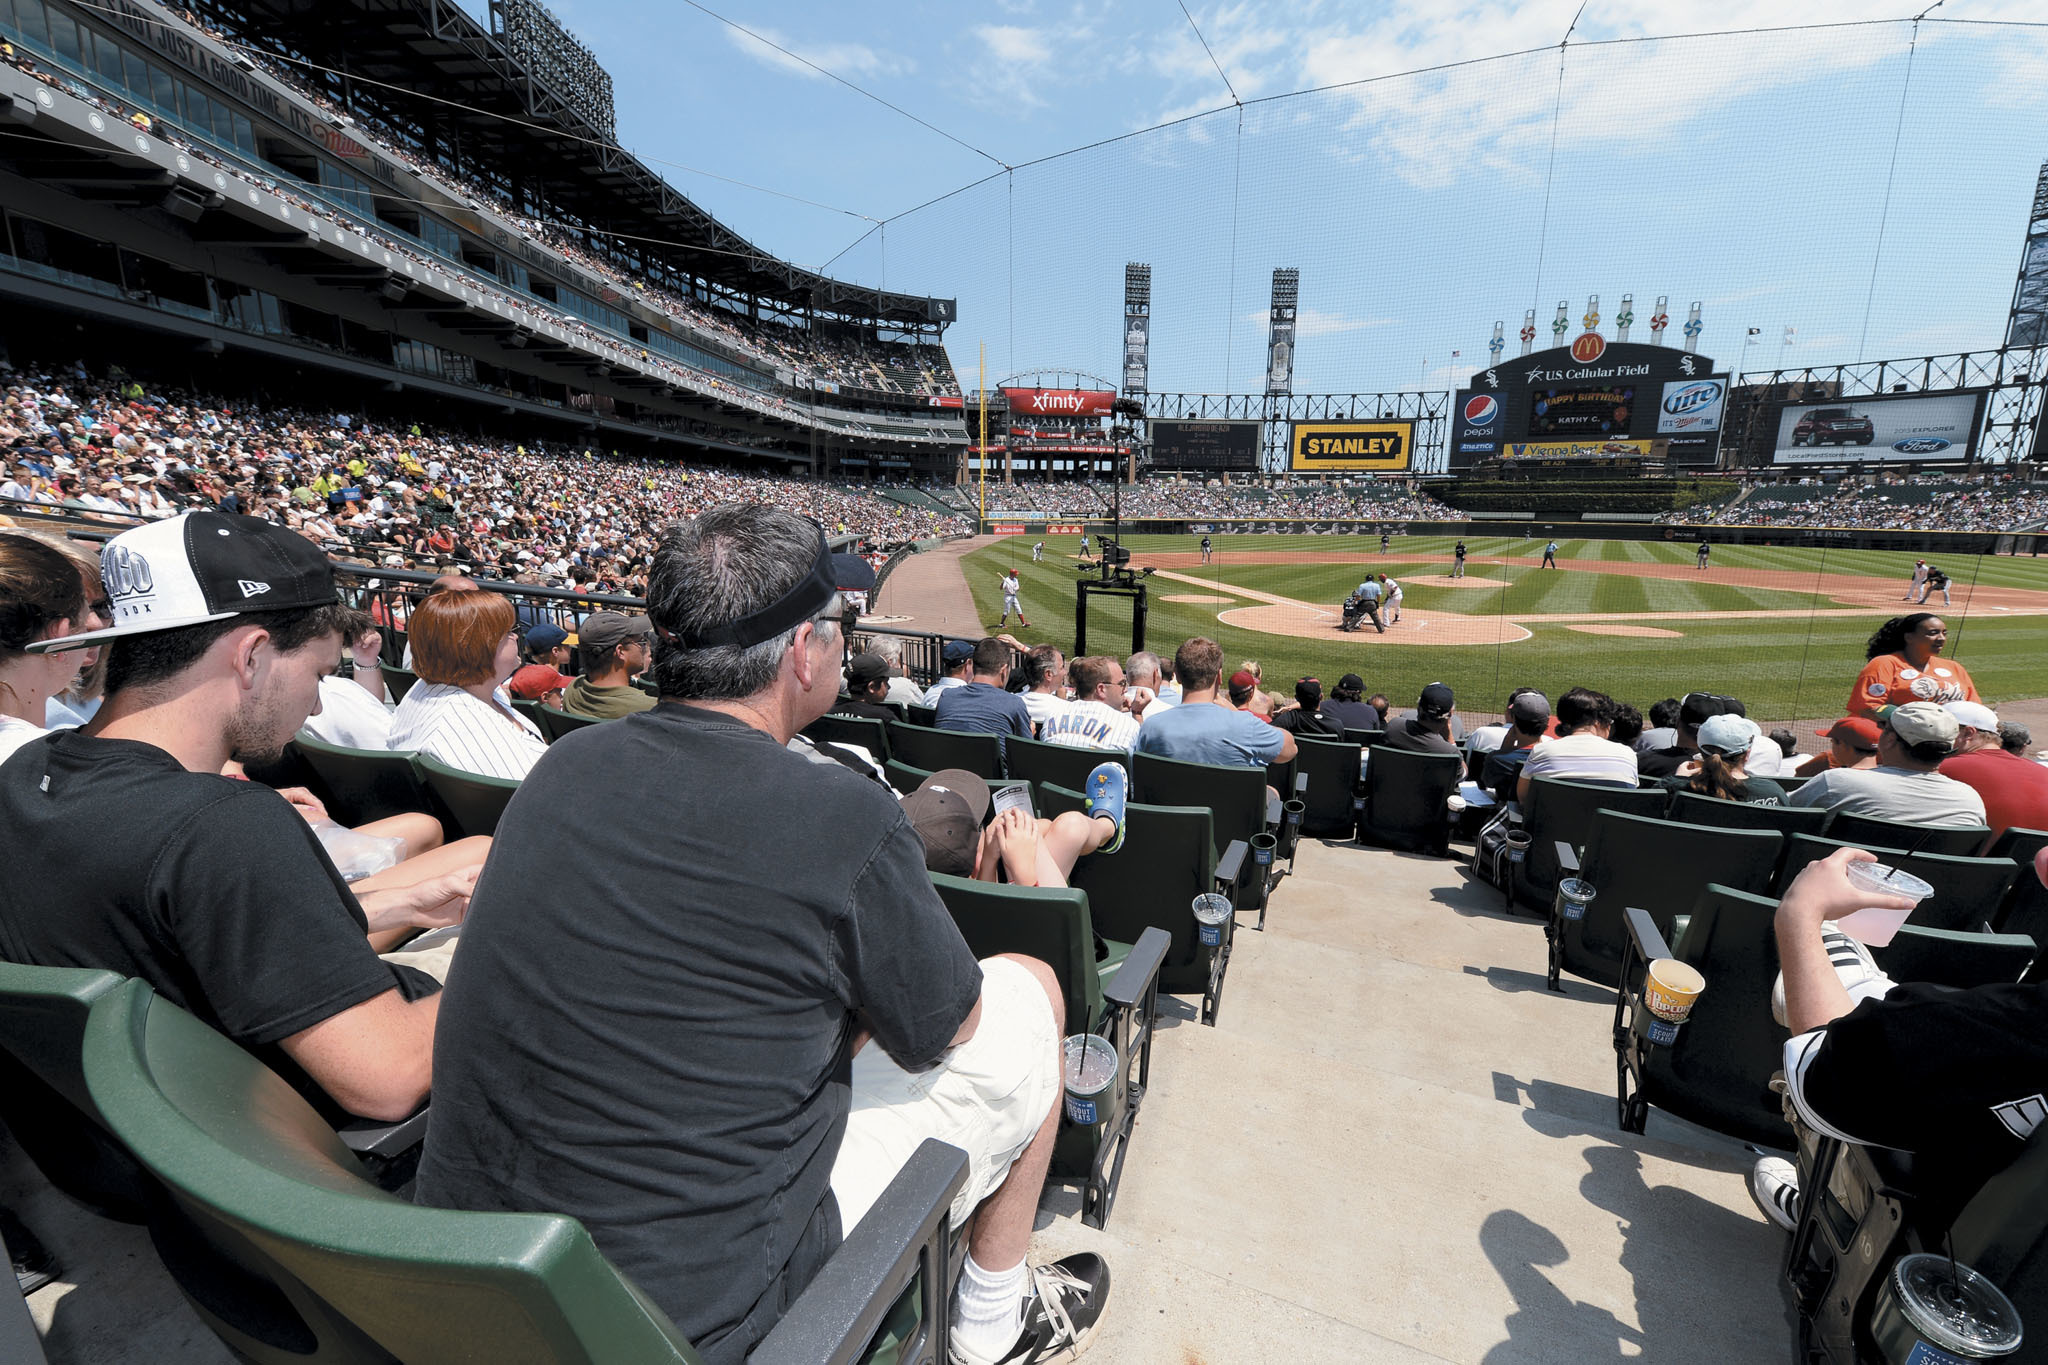 Watch the South Siders play ball at the Cell.